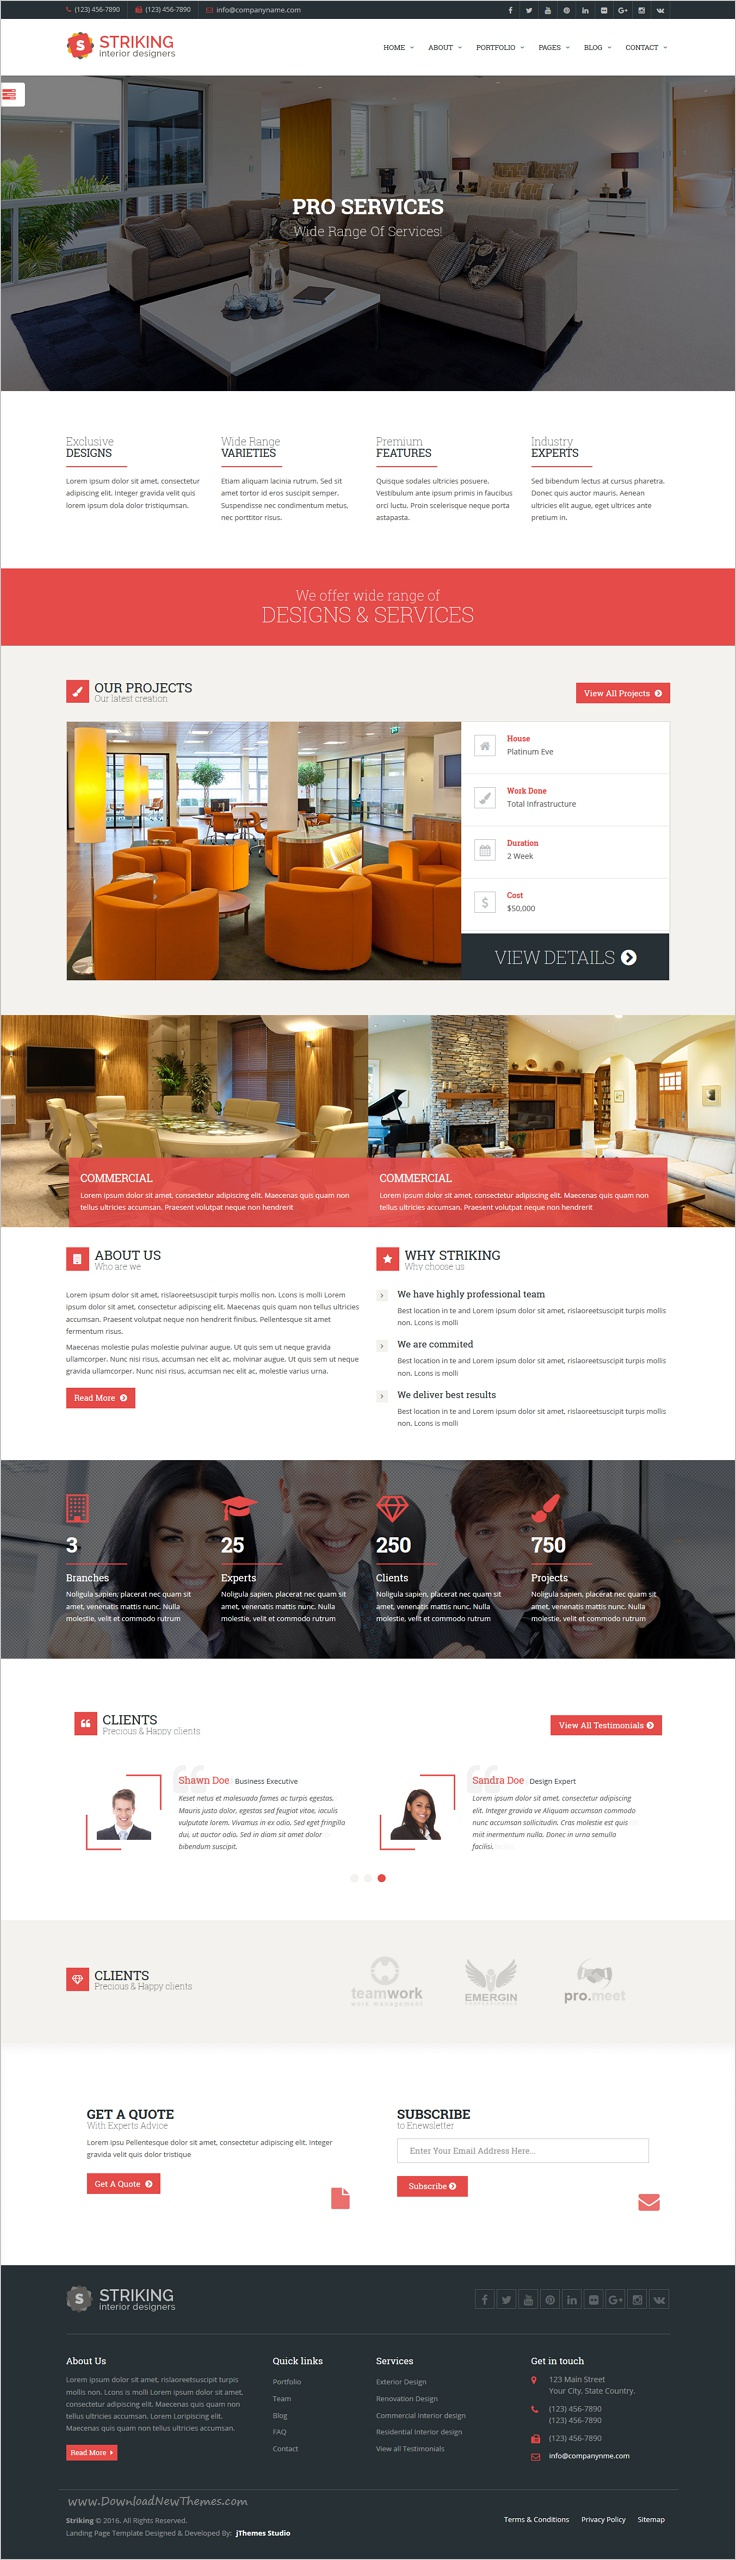 Striking Interior Design, Corporate, Industry Company WordPress Theme